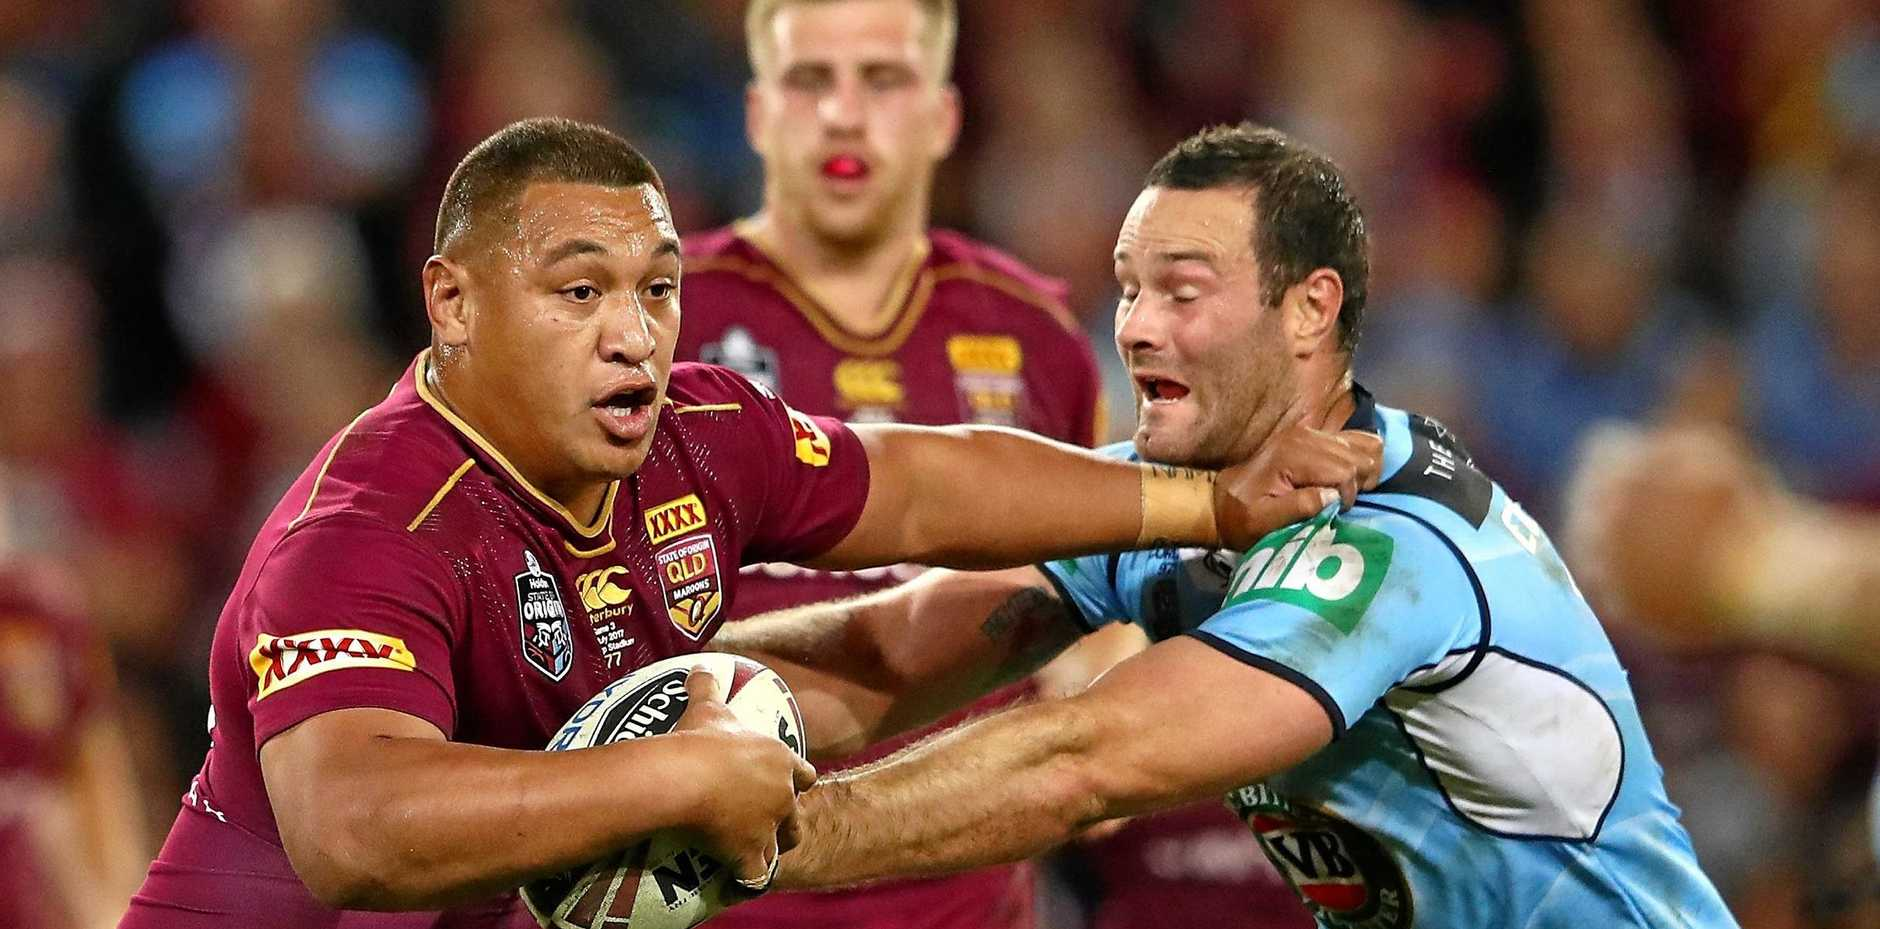 Joshua Papalii of the Maroons is tackled during game three of the State Of Origin series between the Queensland Maroons and the New South Wales Blues at Suncorp Stadium on July 12, 2017 in Brisbane, Australia.